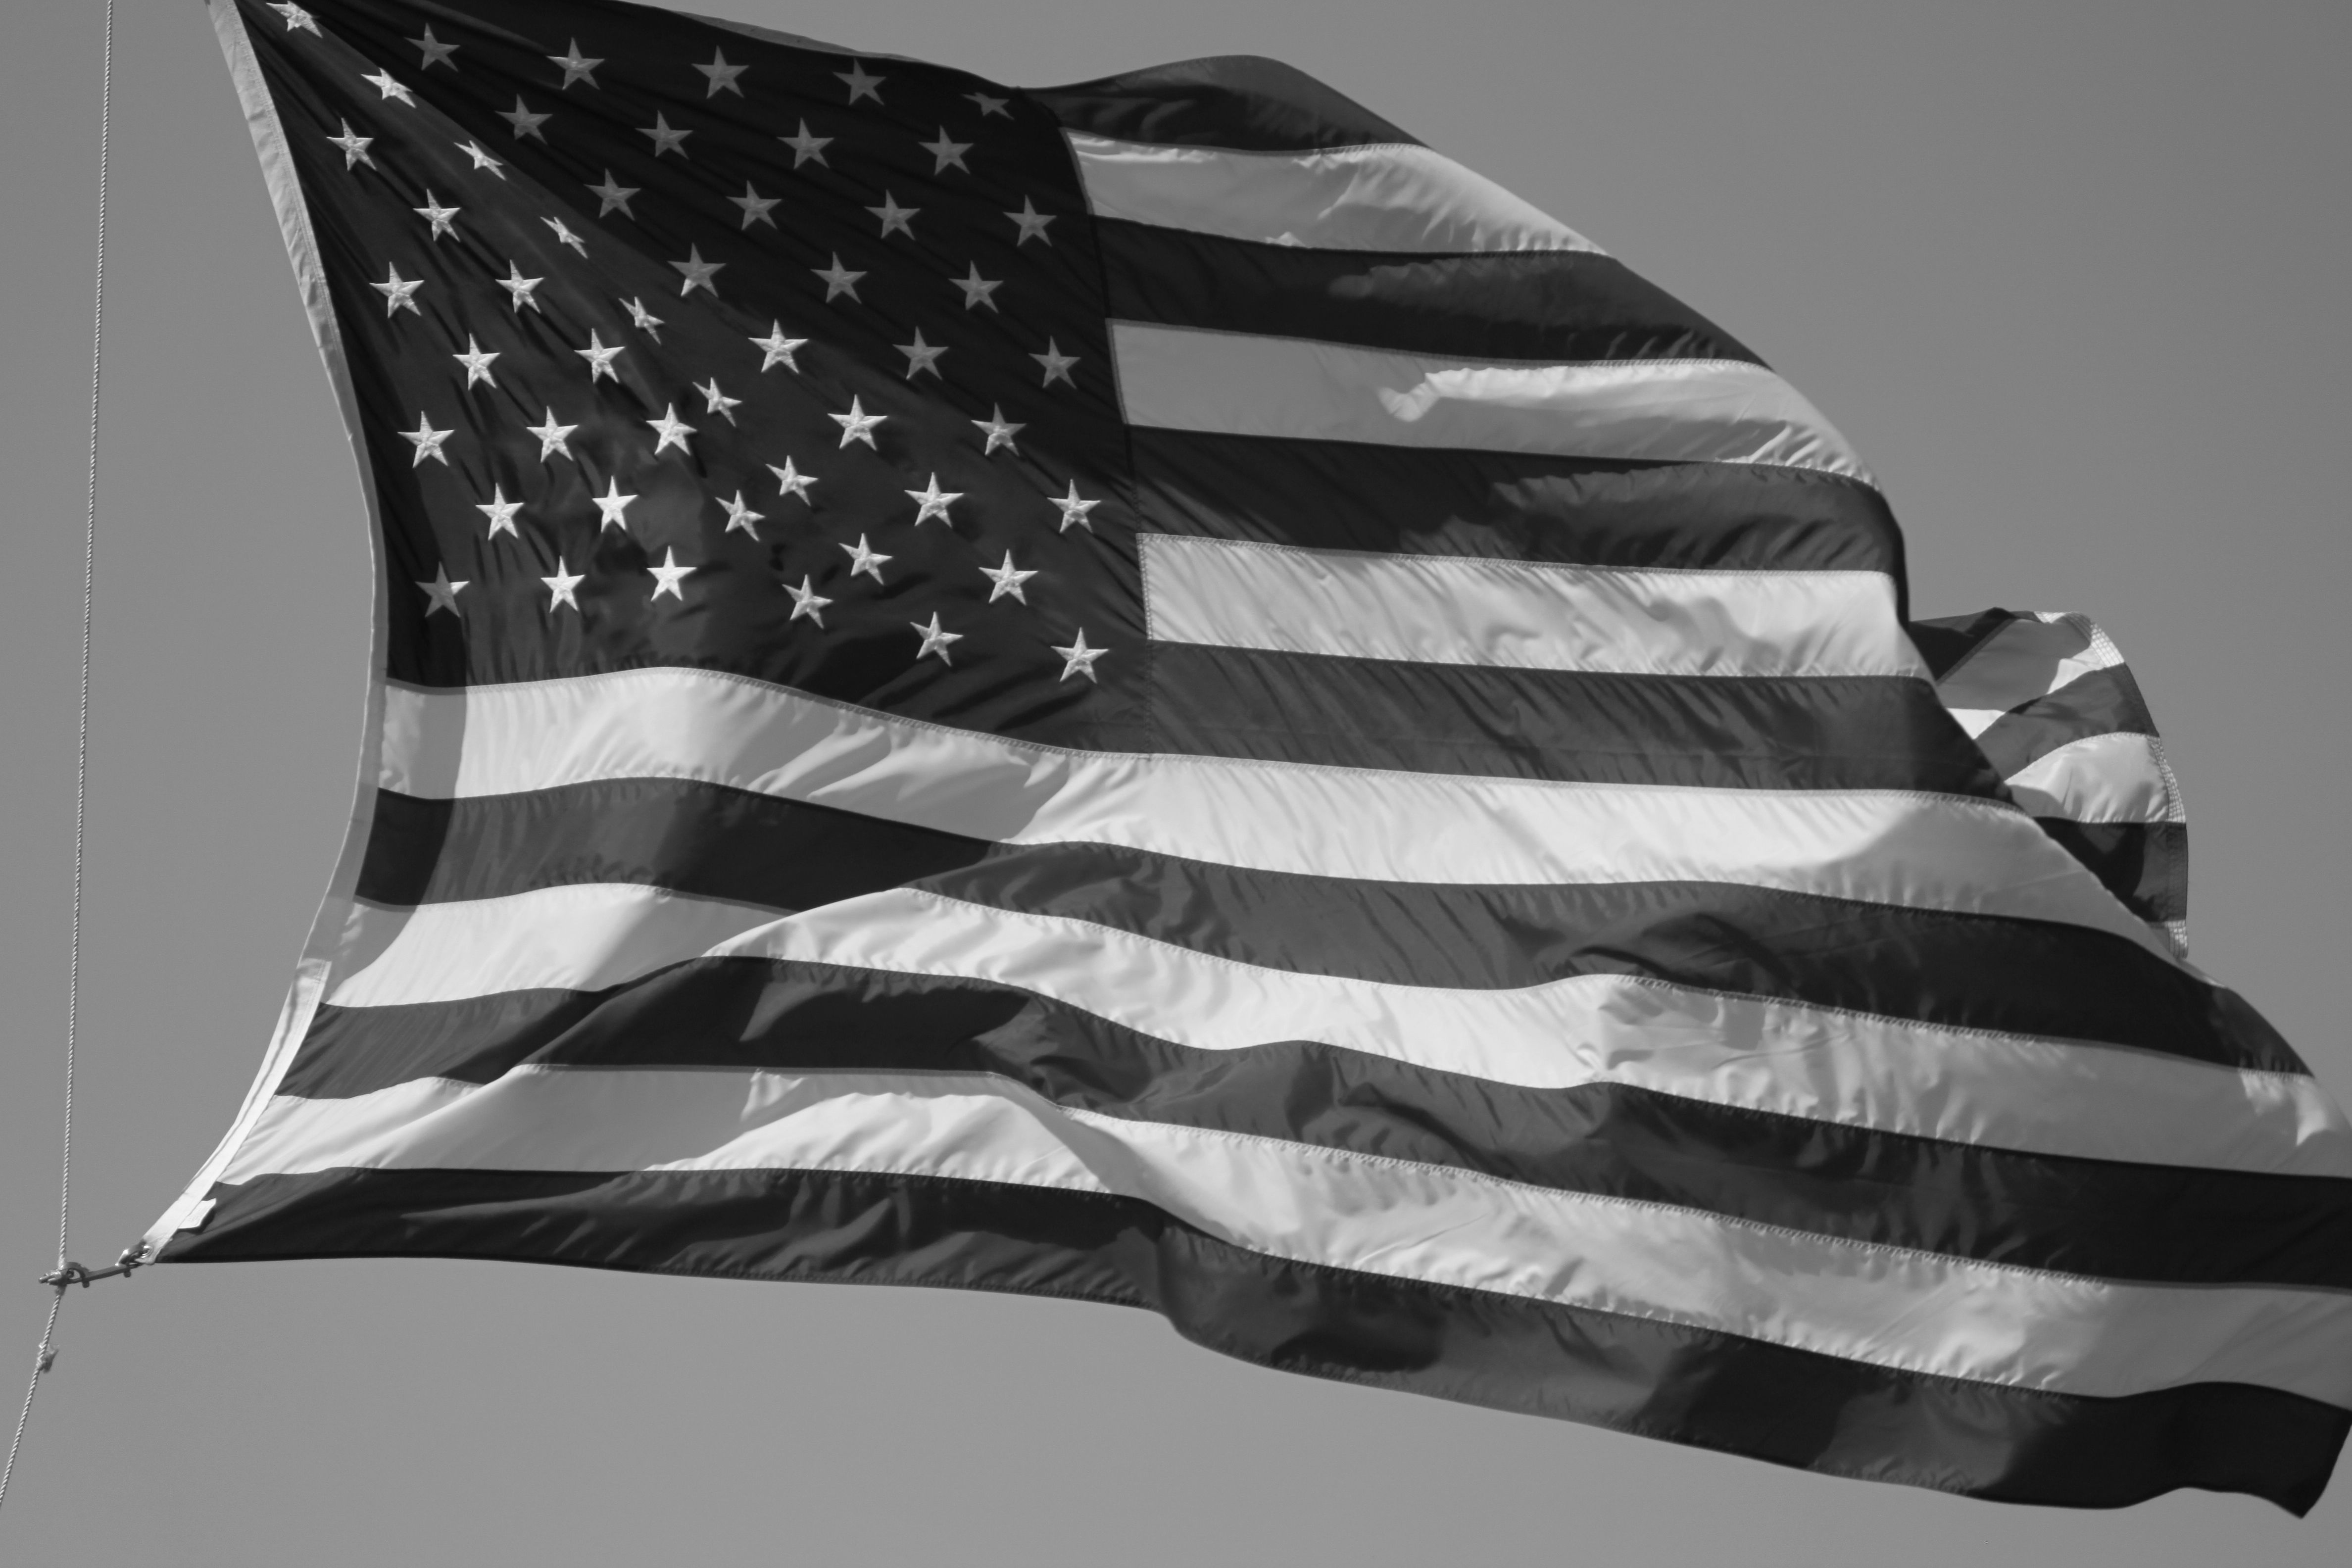 4752x3168 Black and White American Flag Wallpaper HD Wallpaper | Others Wallpapers